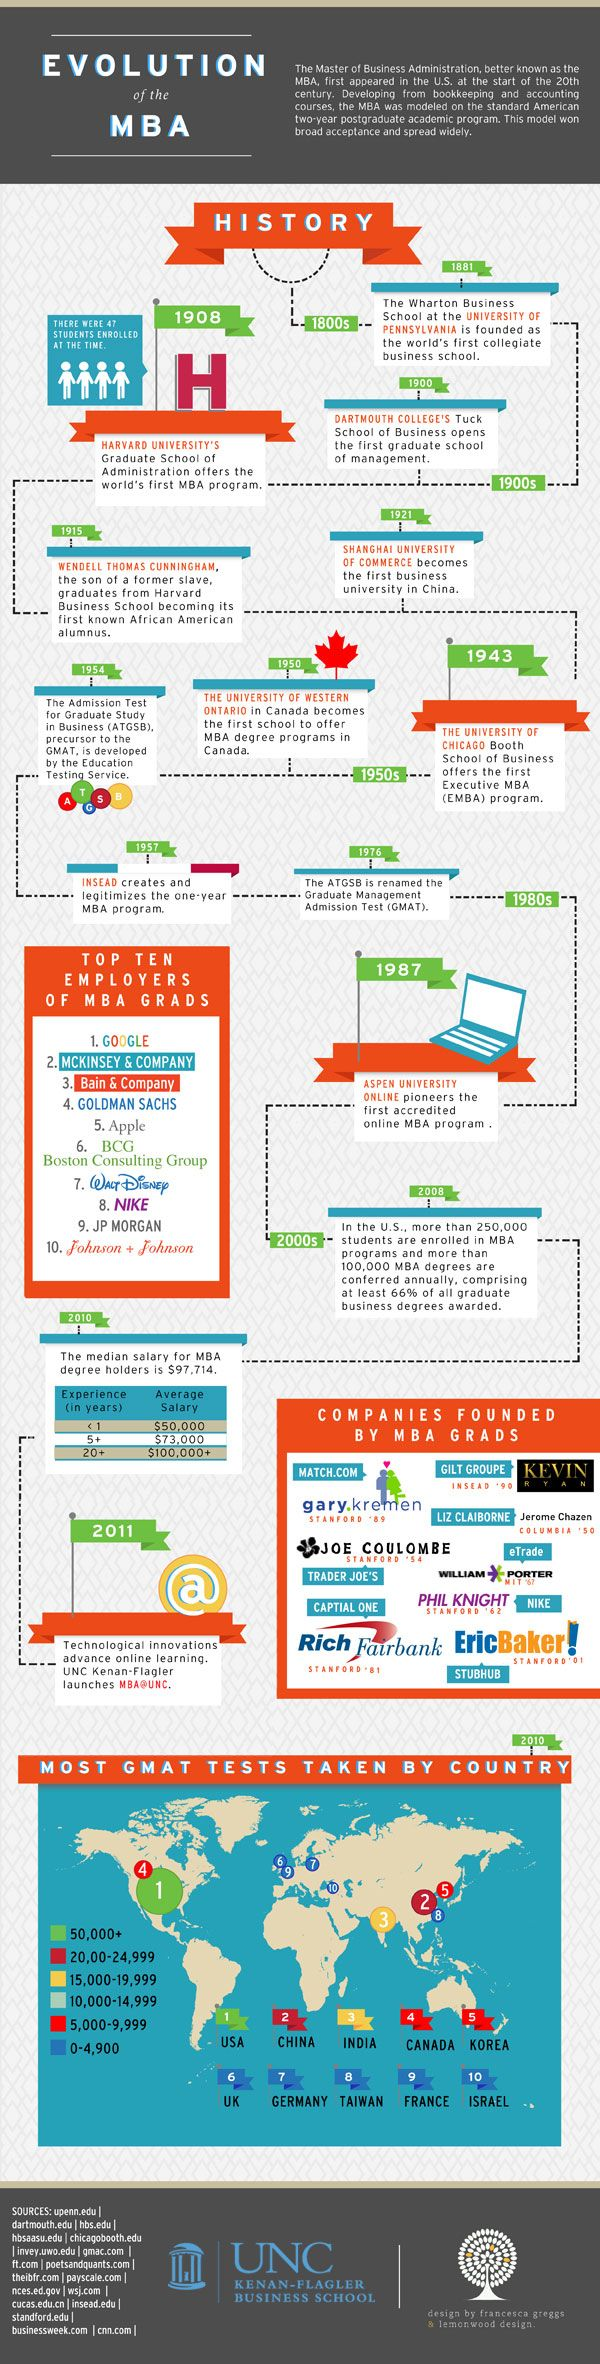 best images about mba benefits gmat test 17 best images about mba benefits gmat test entrepreneur and worth it